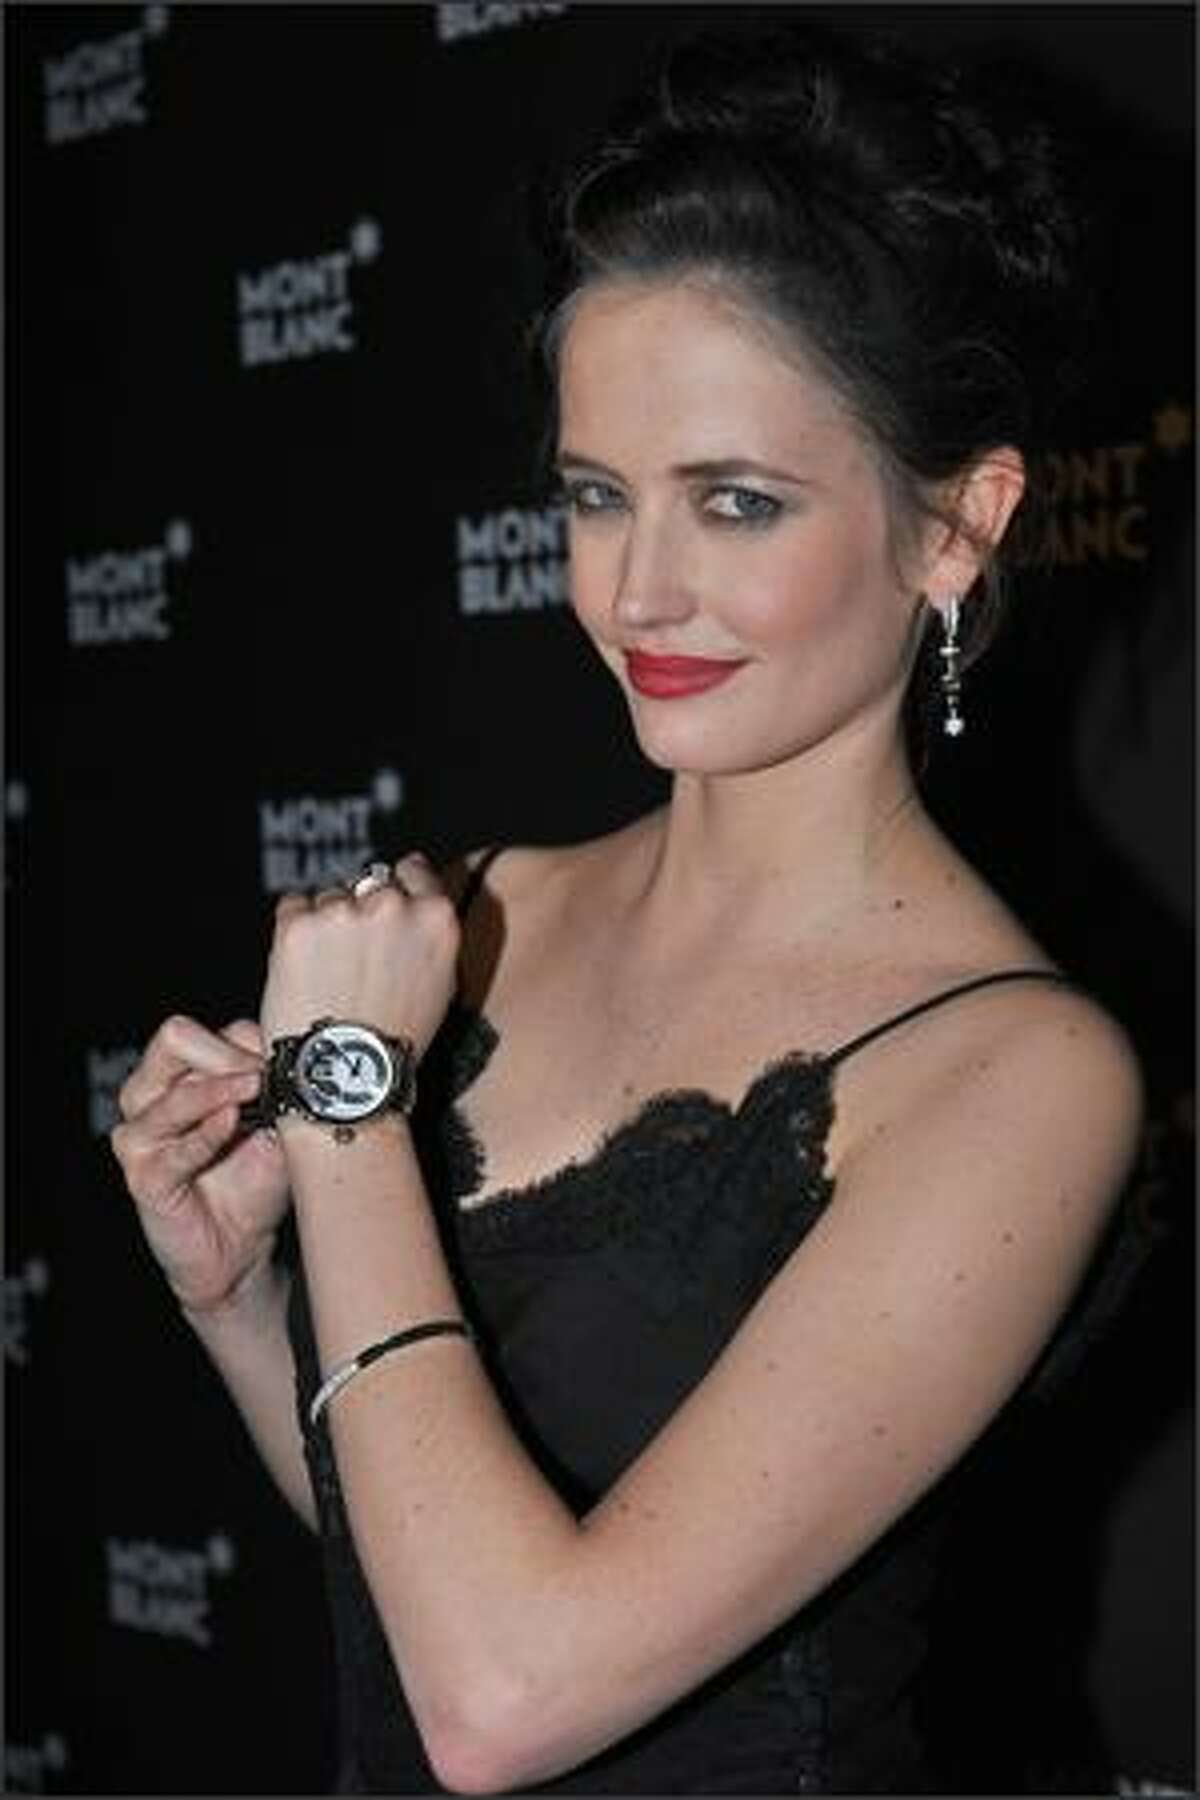 """Actress and Montblanc brand ambassador Eva Green attends """"Writing Time,"""" Robert Wilson's watch launch gala hosted by Montblanc during the Salon International de la Haute Horlogerie at the Geneva Palaexpo in Geneva, Switzerland. (Photo by Pascal Le Segretain/Getty Images for Montblanc)"""